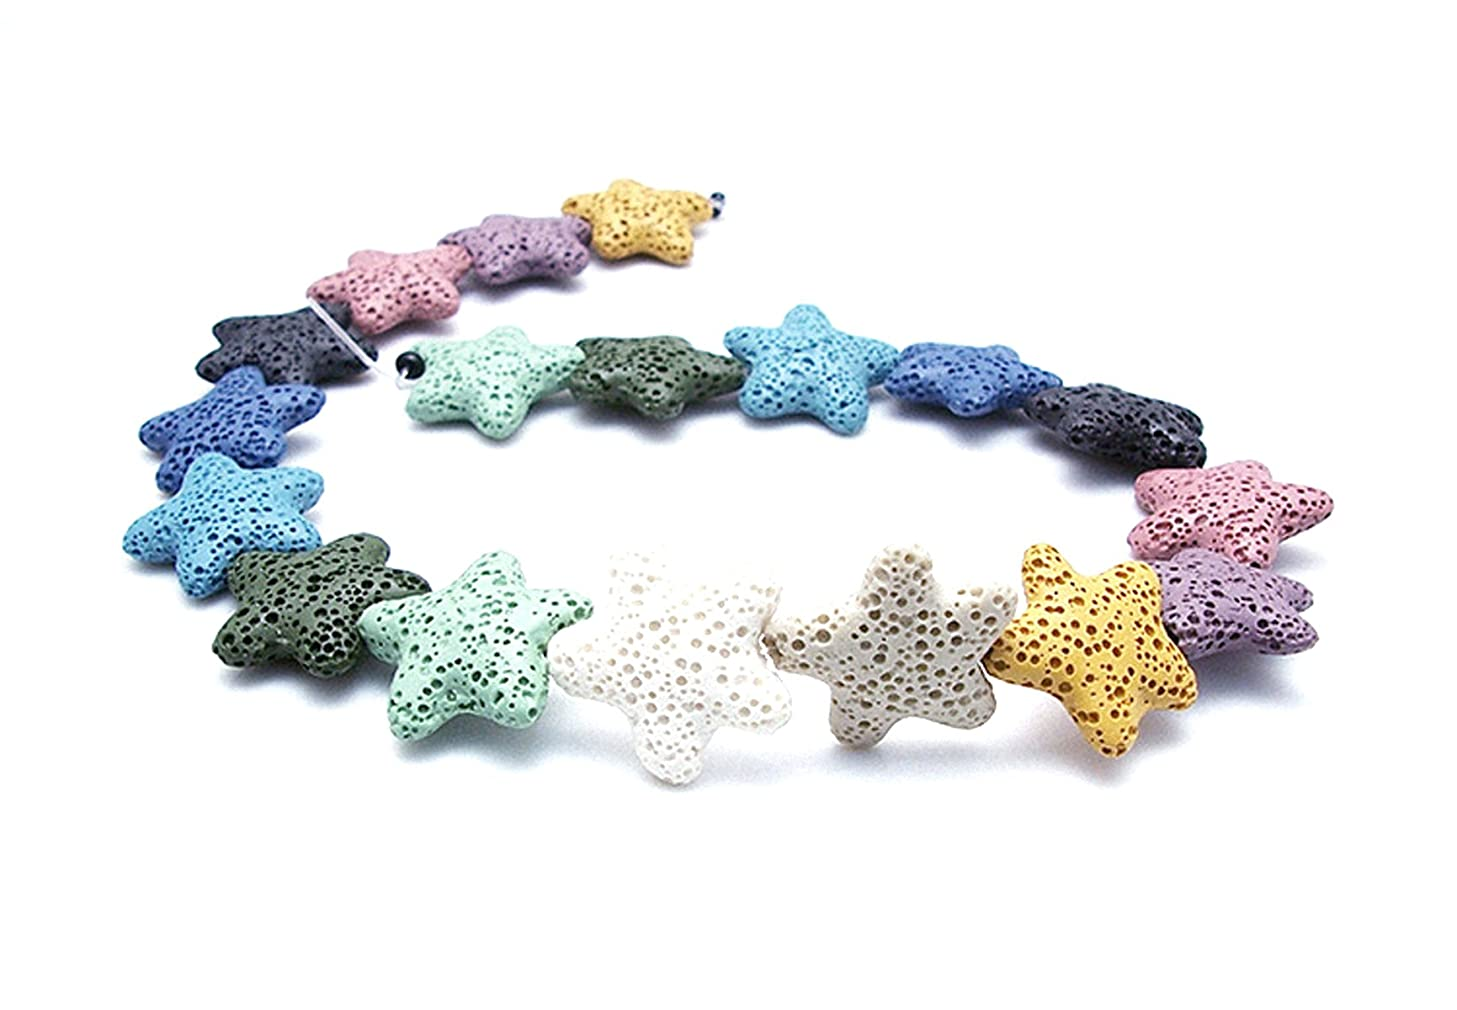 Star Shape Smooth Coloured Lava Stone Loose Beads - Lava Rock Beads Volcanic Gemstone for Beaded Necklace Bracelet DIY Handmade Jewelry Making (23 x 23 x 6mm)